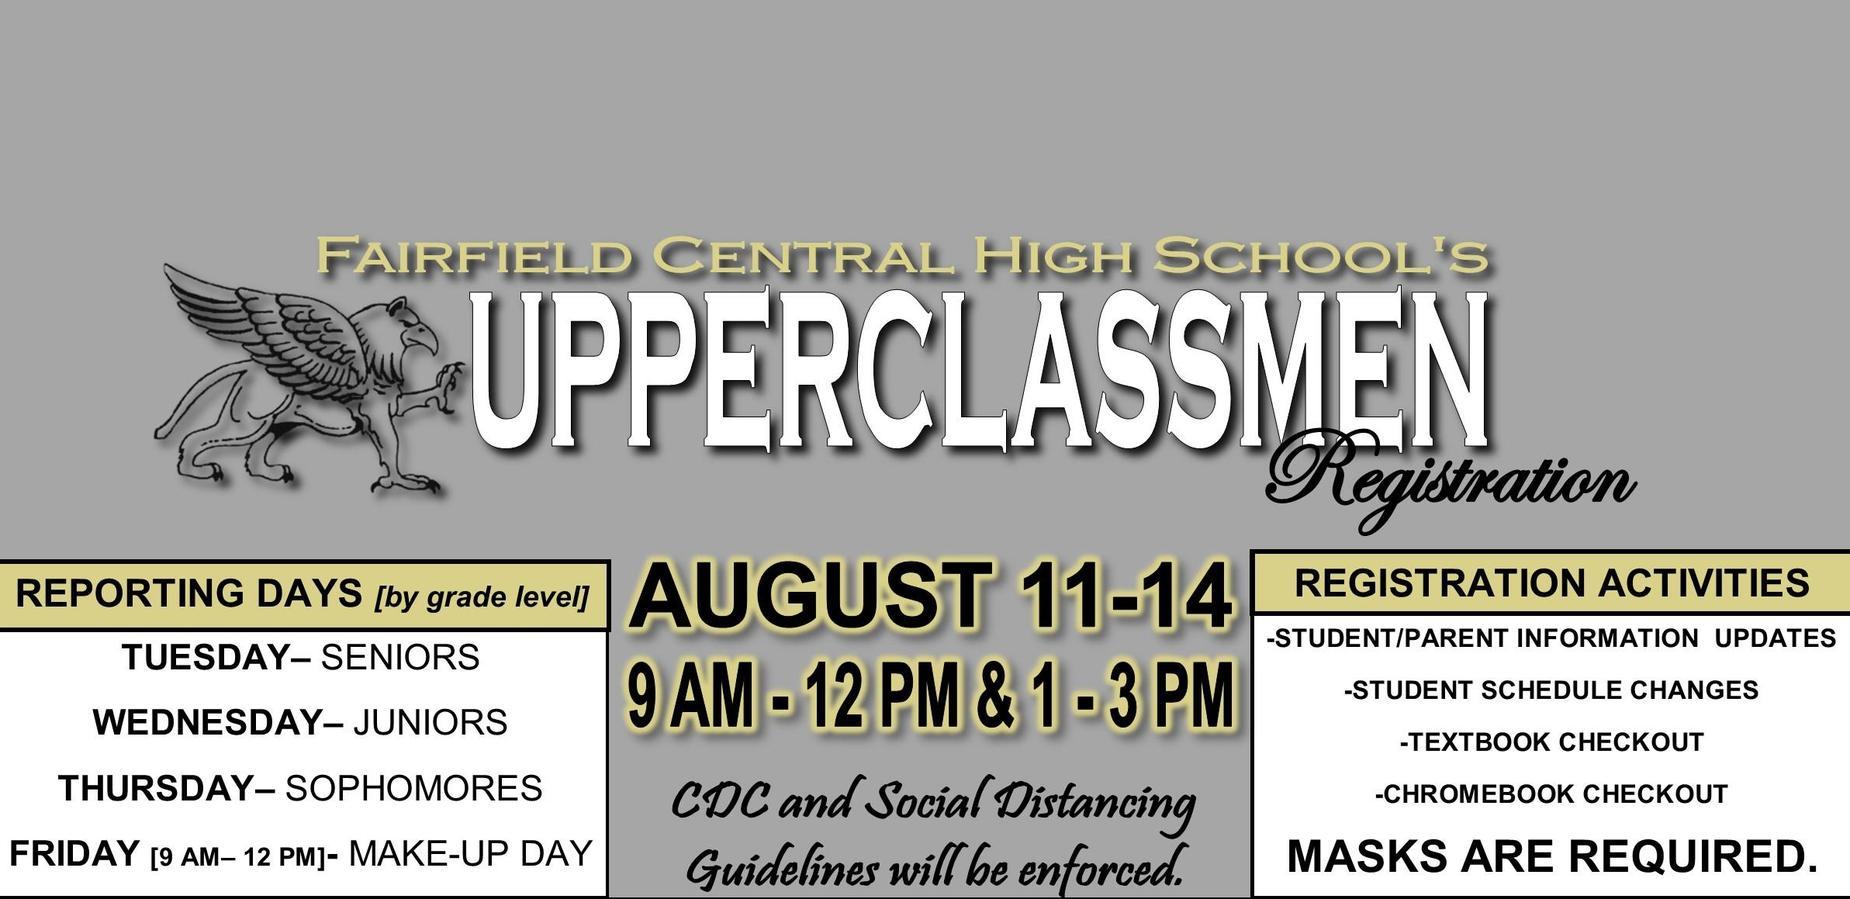 FCHS Upperclassmen Registration; AUGUST 11-14; 9 AM-12 PM & 1-3 PM; TUESDAY-SENIORS, WEDNESDAY- JUNIORS, THURSDAY-SOPHOMORES; FRIDAY-MAKE UP; -STUDENT/PARENT INFORMATION  UPDATES -STUDENT SCHEDULE CHANGES -TEXTBOOK CHECKOUT -CHROMEBOOK CHECKOUT MASKS ARE REQUIRED.